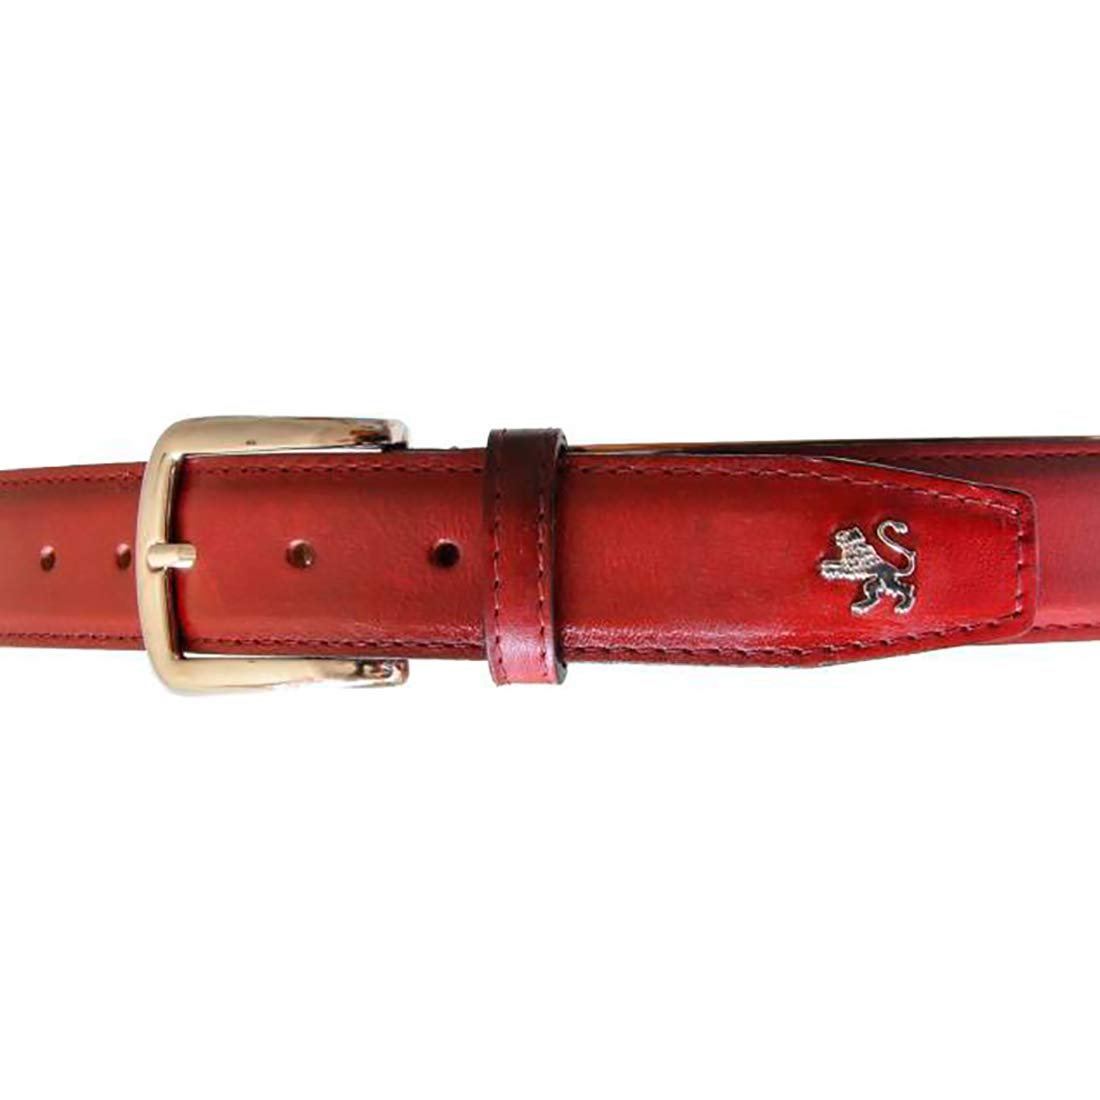 Custom Length Pratesi Unisex Personalized Custom Initials Embossing Italian Leather Bruce Range Collection 35mm Wide Belt with Buckle Maximum 53 in Cherry